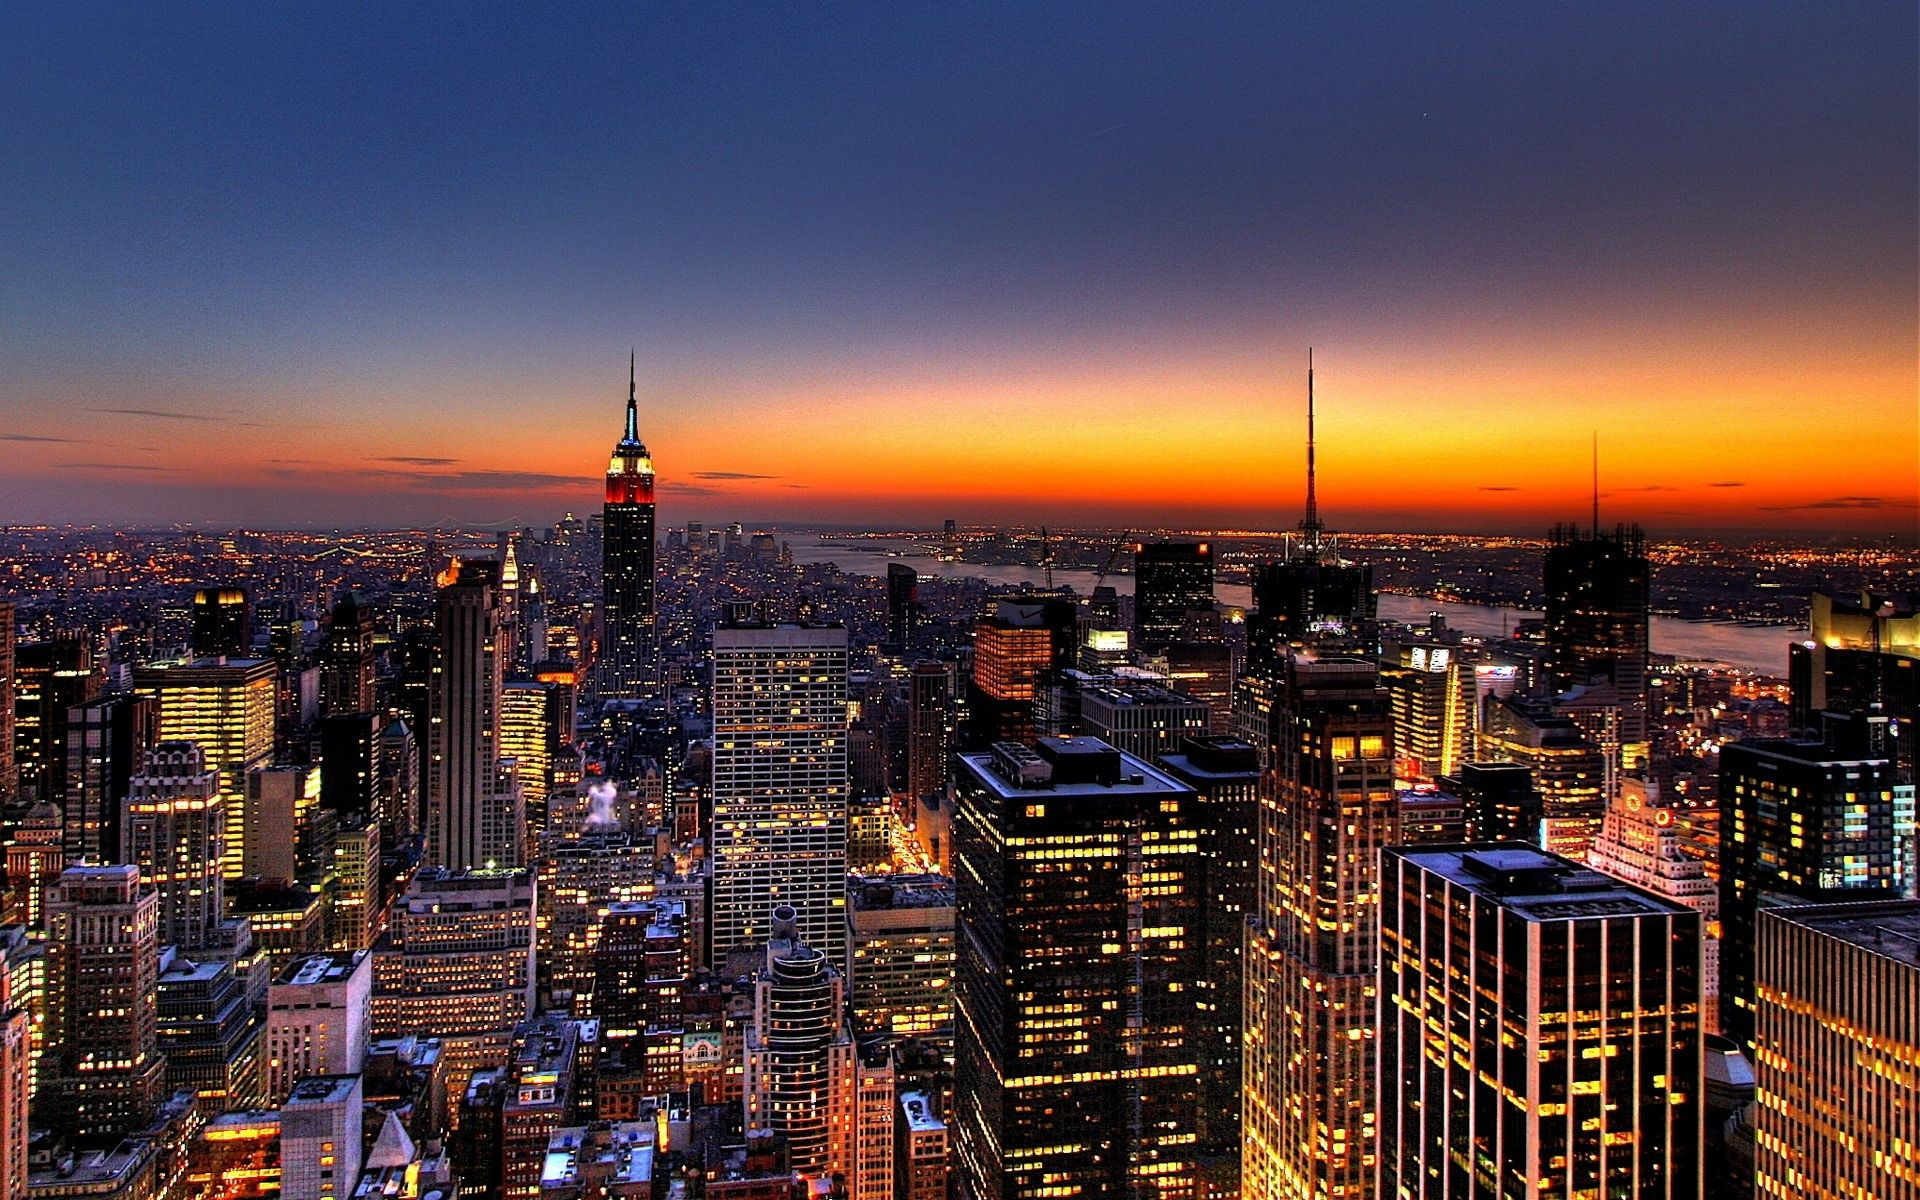 New York City at Sunset (click to view)